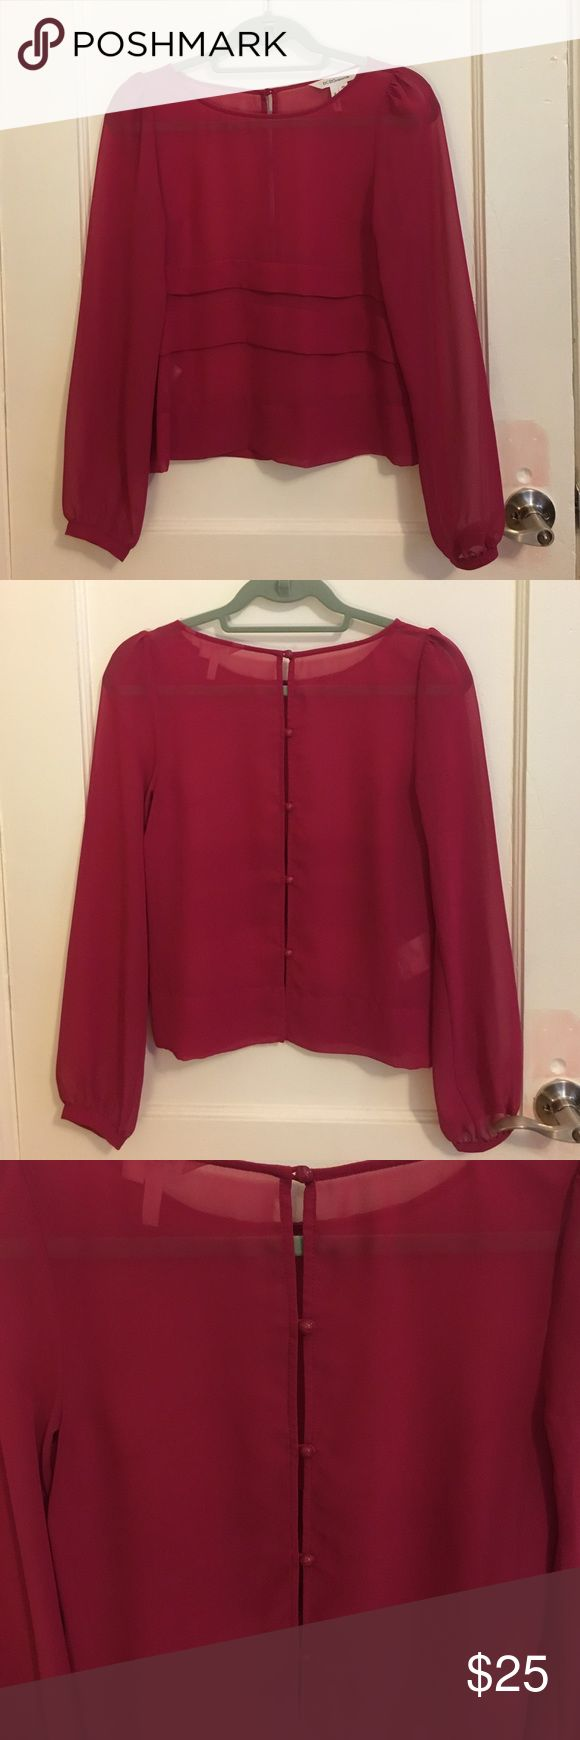 BCBGeneration Red Berry sheer top LIKE NEW, WORN ONLY ONCE. BCBGeneration sheer top in Red Berry. Size XS. Cute tiered front, button up back, cuffed sleeves, slightly puffed shoulders. BCBGeneration Tops Blouses